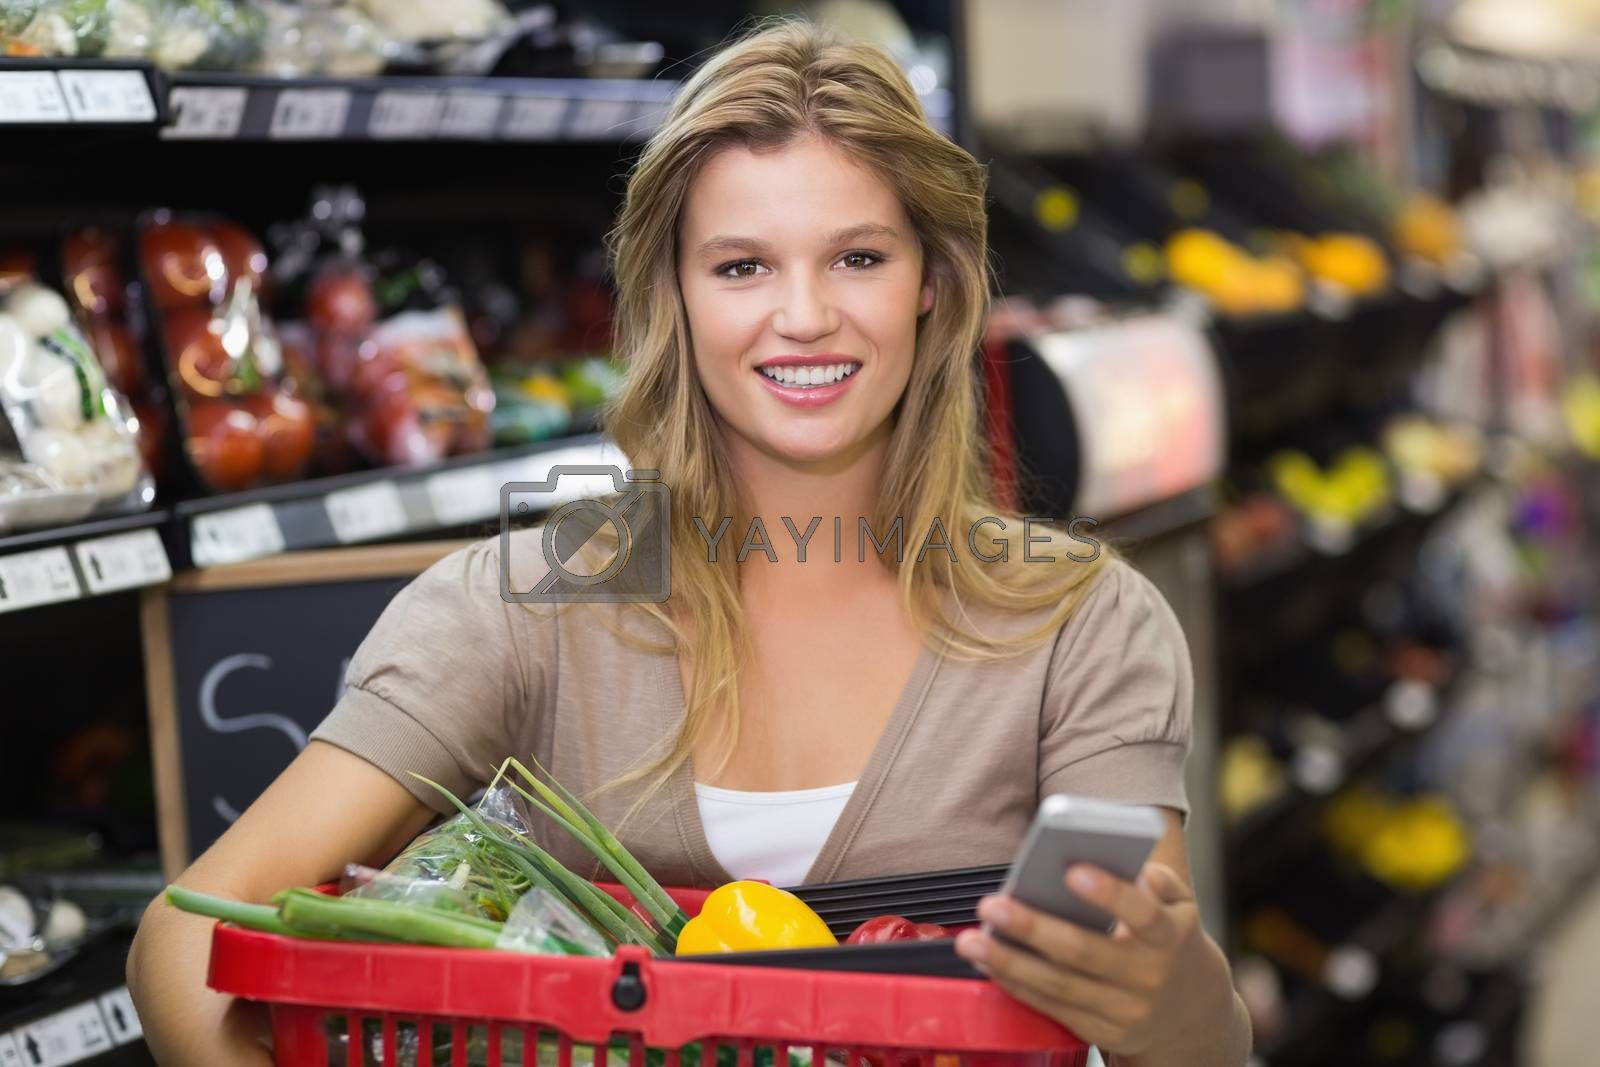 Royalty free image of Portrait of smiling blonde woman buying vegetables and using her smartphone  by Wavebreakmedia